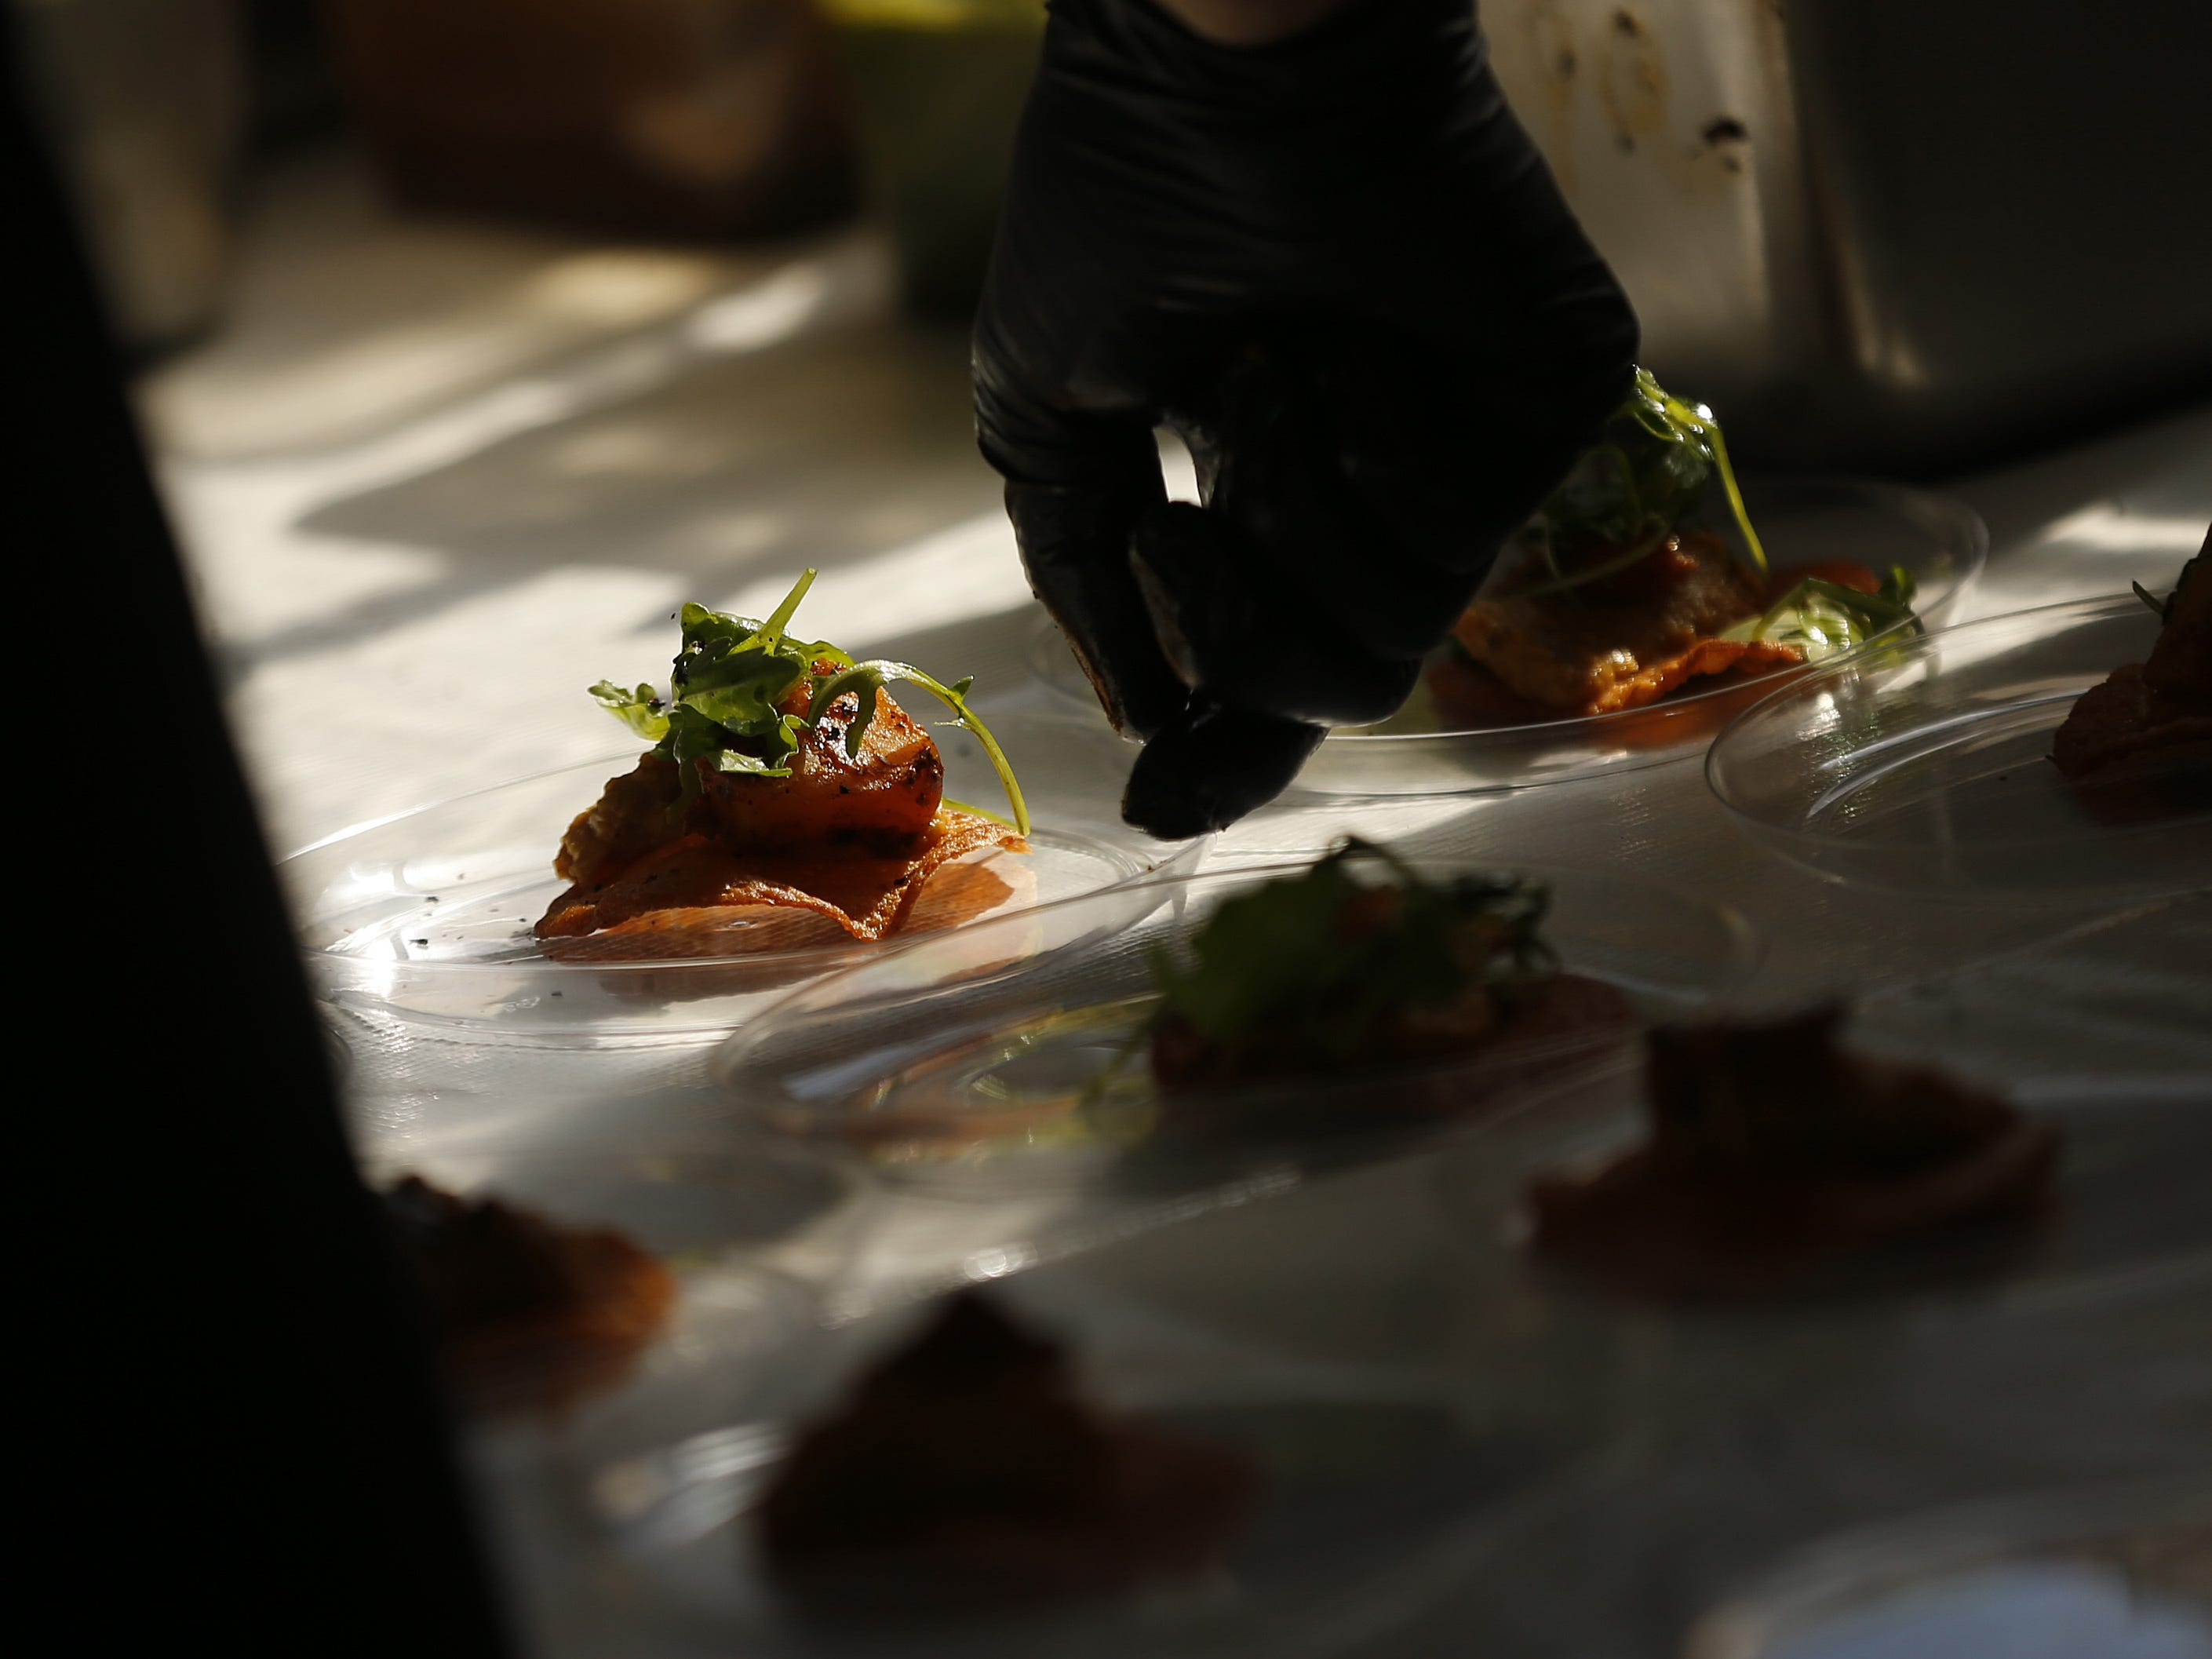 Crepe Bar chefs prepare crepe-tats with Hatch chiles and barbecue acorn squash during the azcentral Wine & Food Experience at WestWorld of Scottsdale on Nov. 3, 2018.